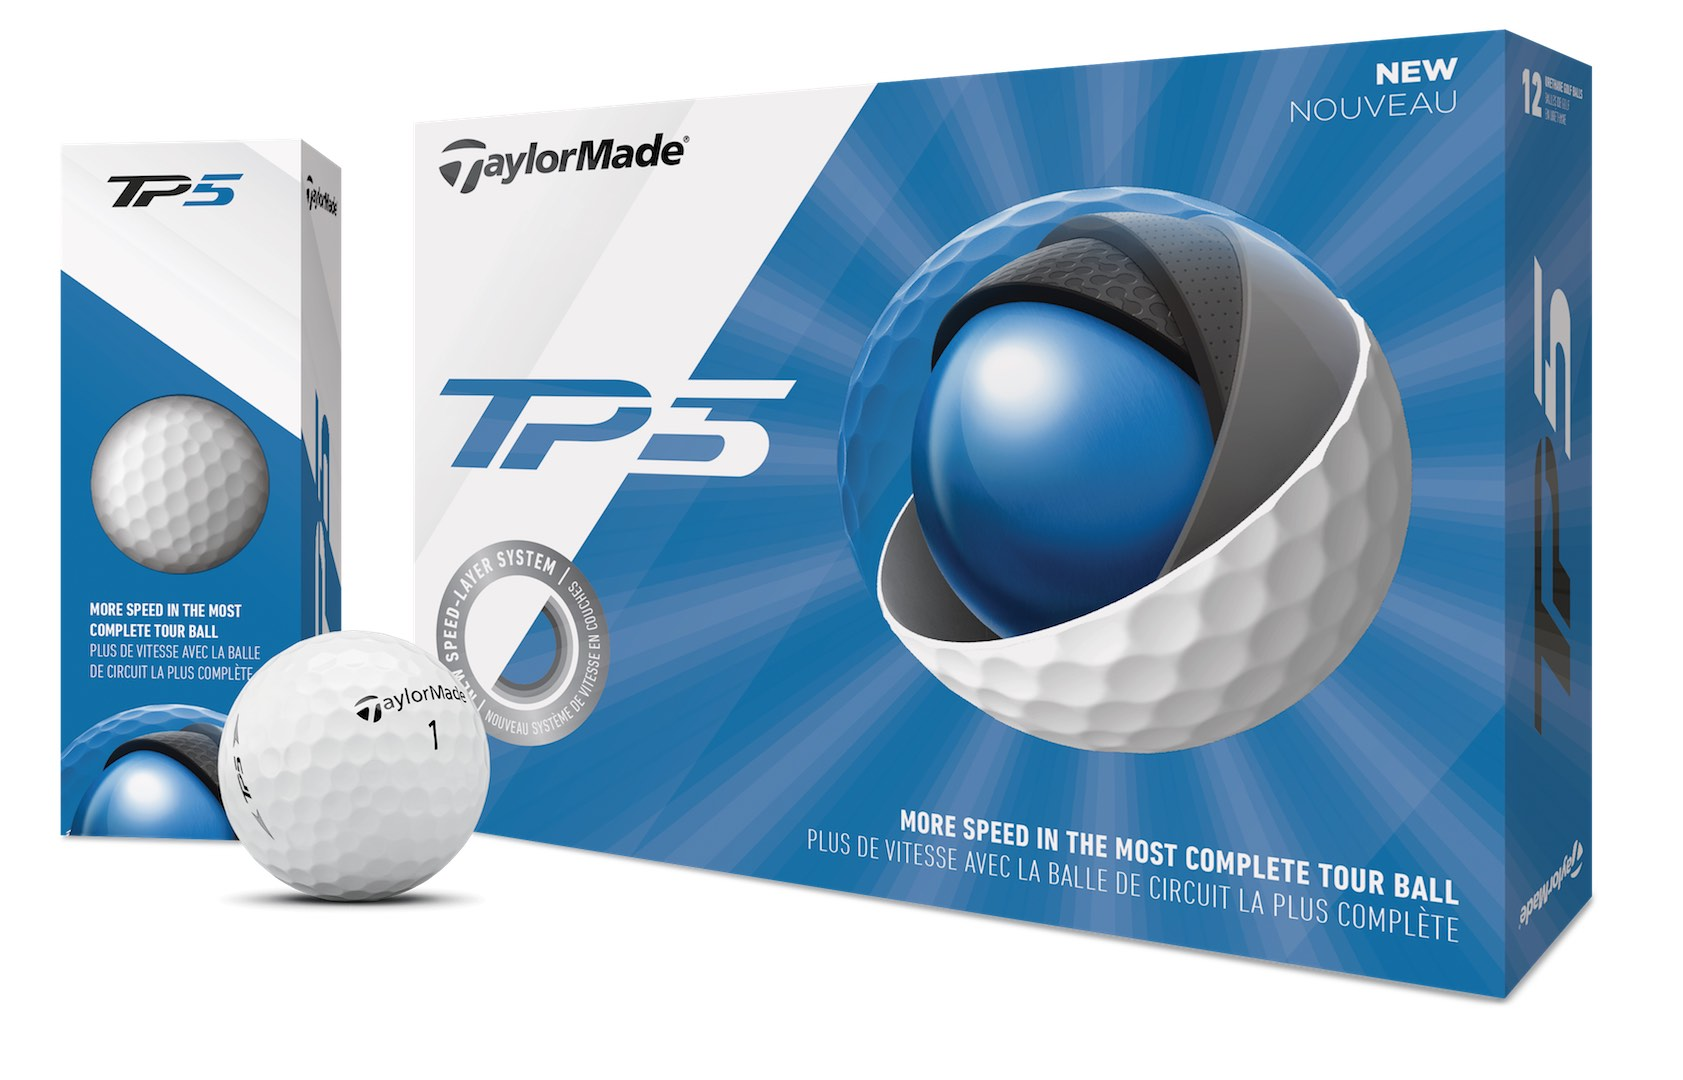 TaylorMade launch TP5 & TP5X golf balls for 2019